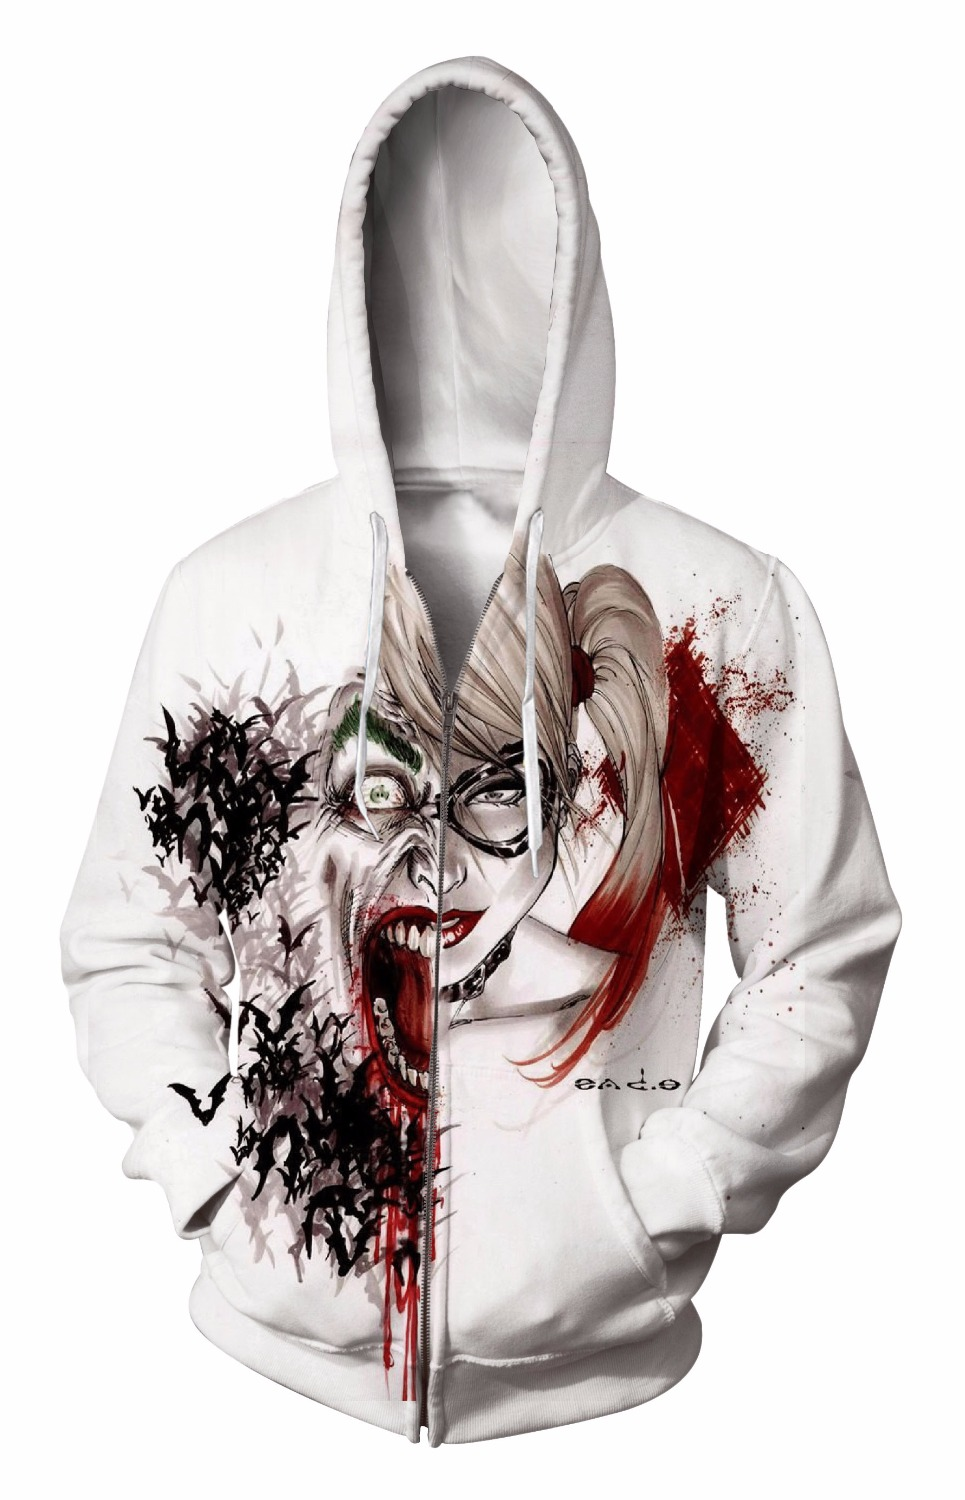 Zip-Up Hoodie 3d Print Soft characte Clothing Women Men Tops Hooded Casual Zipper Sweatshirt Outfits Coats Sweat factory outlet